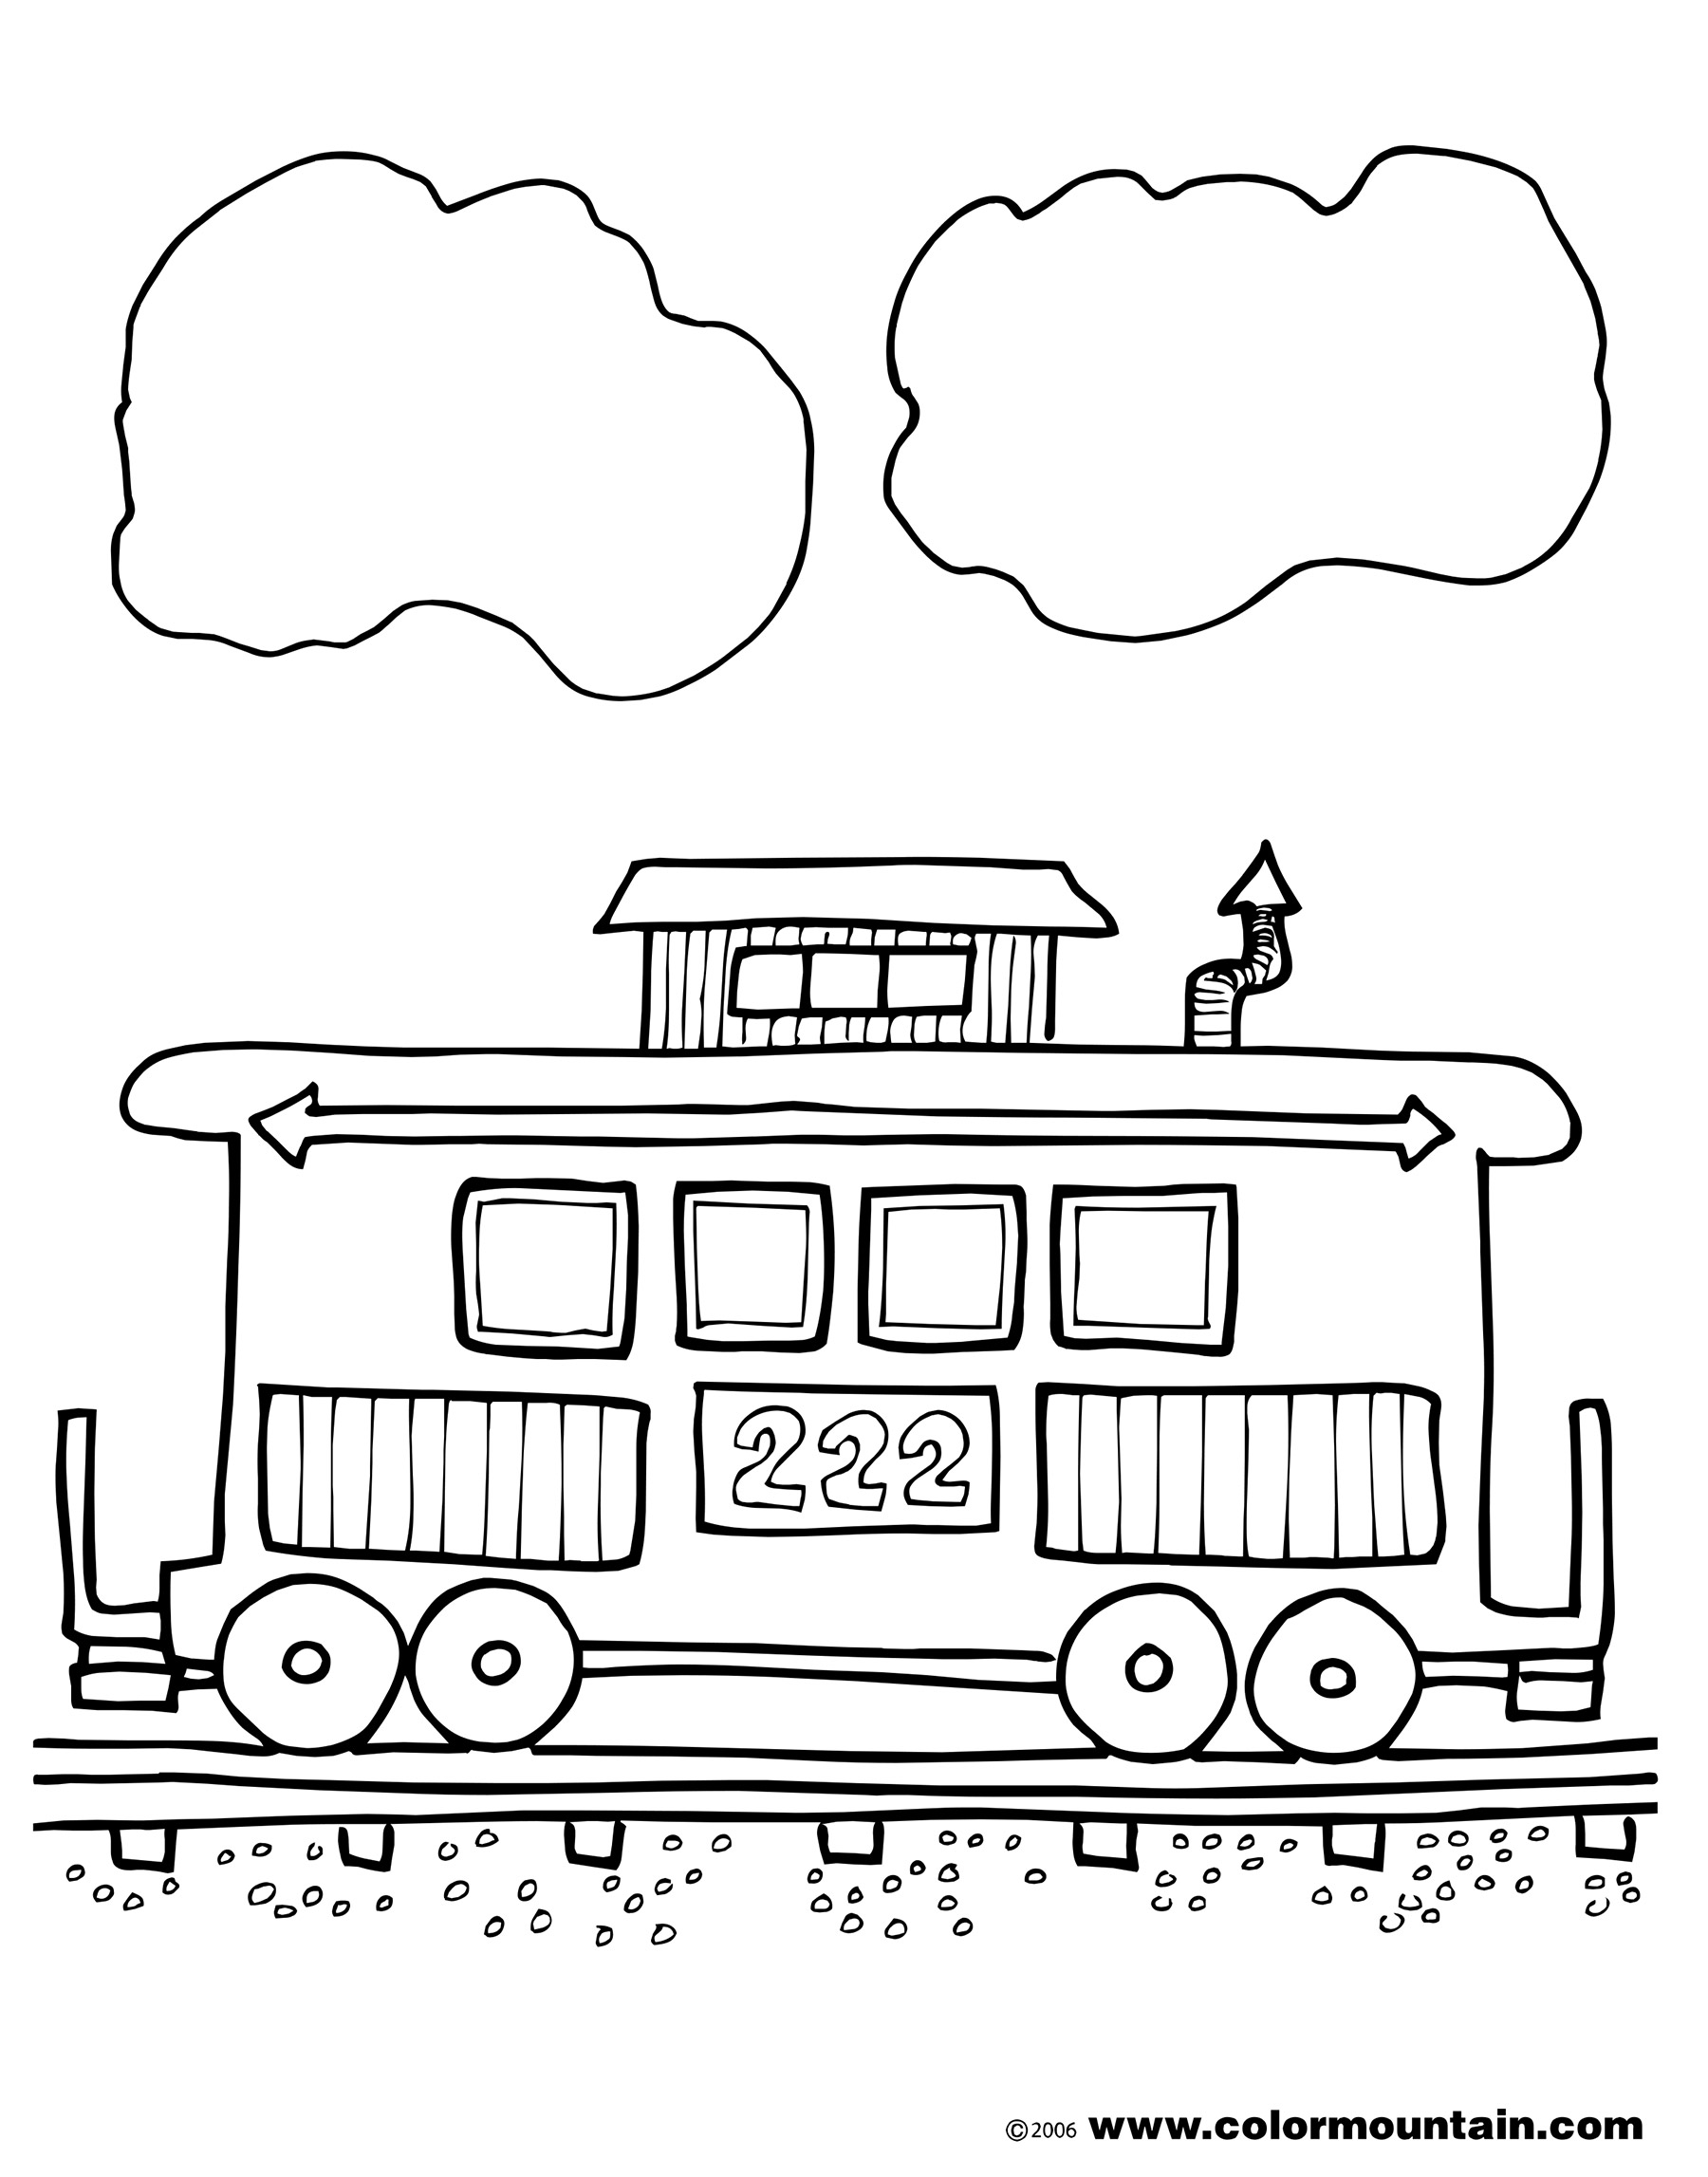 Coloring Pages Of Trains And Cabooses Coloring Page